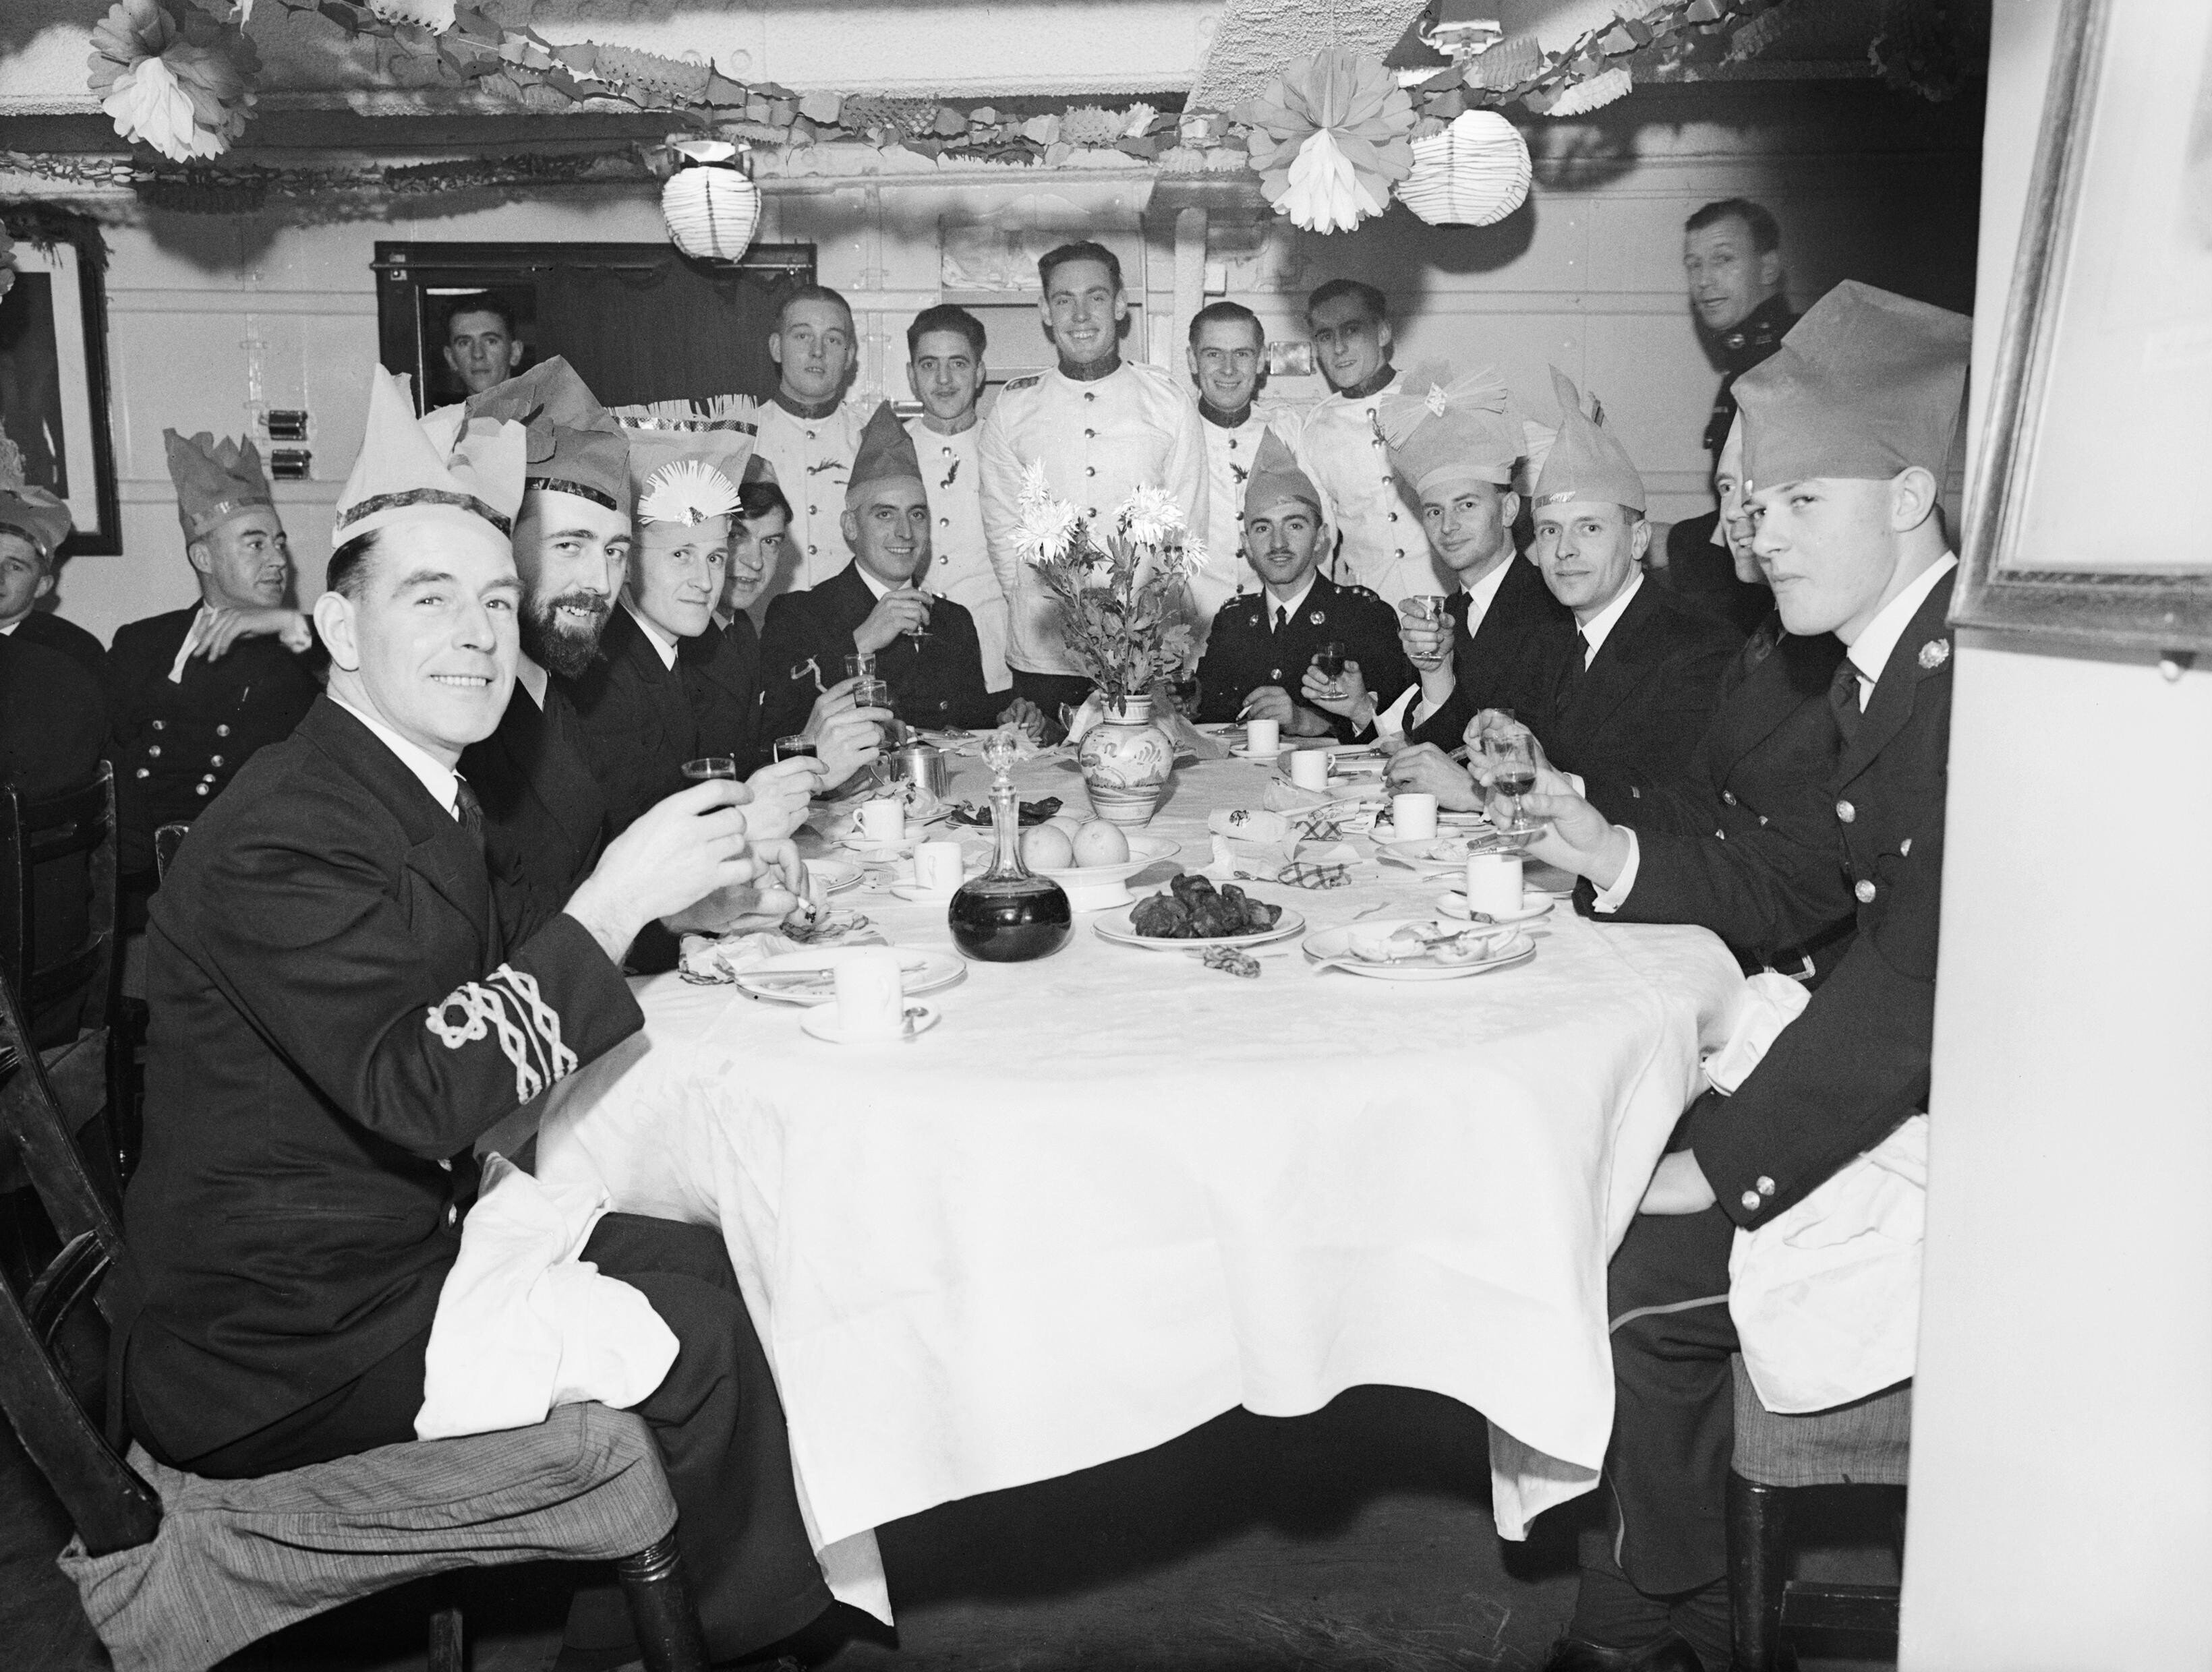 FileChristmas Dinner In The Wardroom Of HMS MALAYA At Scapa Flow 25 December